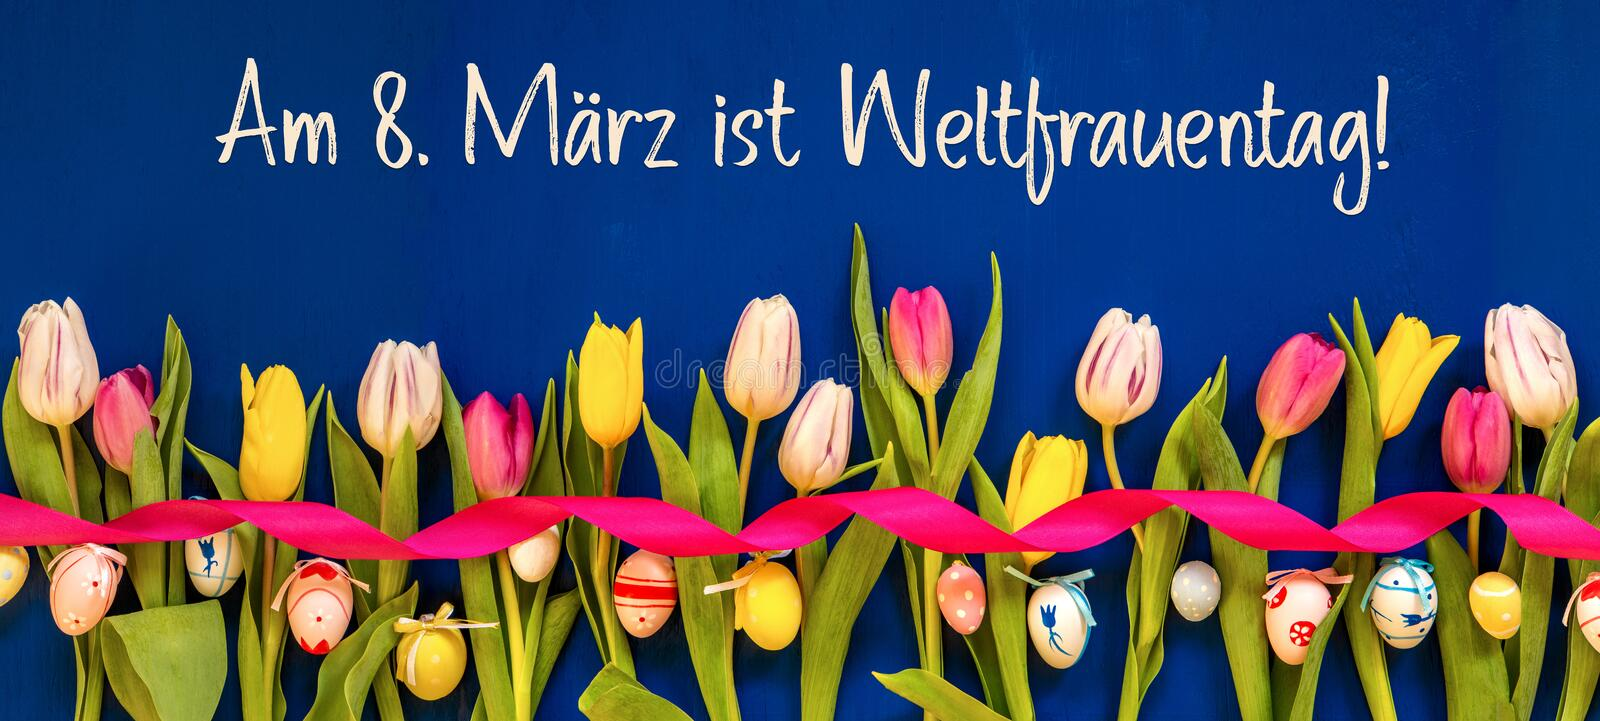 Banner With Colorful Tulip, Weltfrauentag Means Women Day, Easter Egg royalty free stock photography